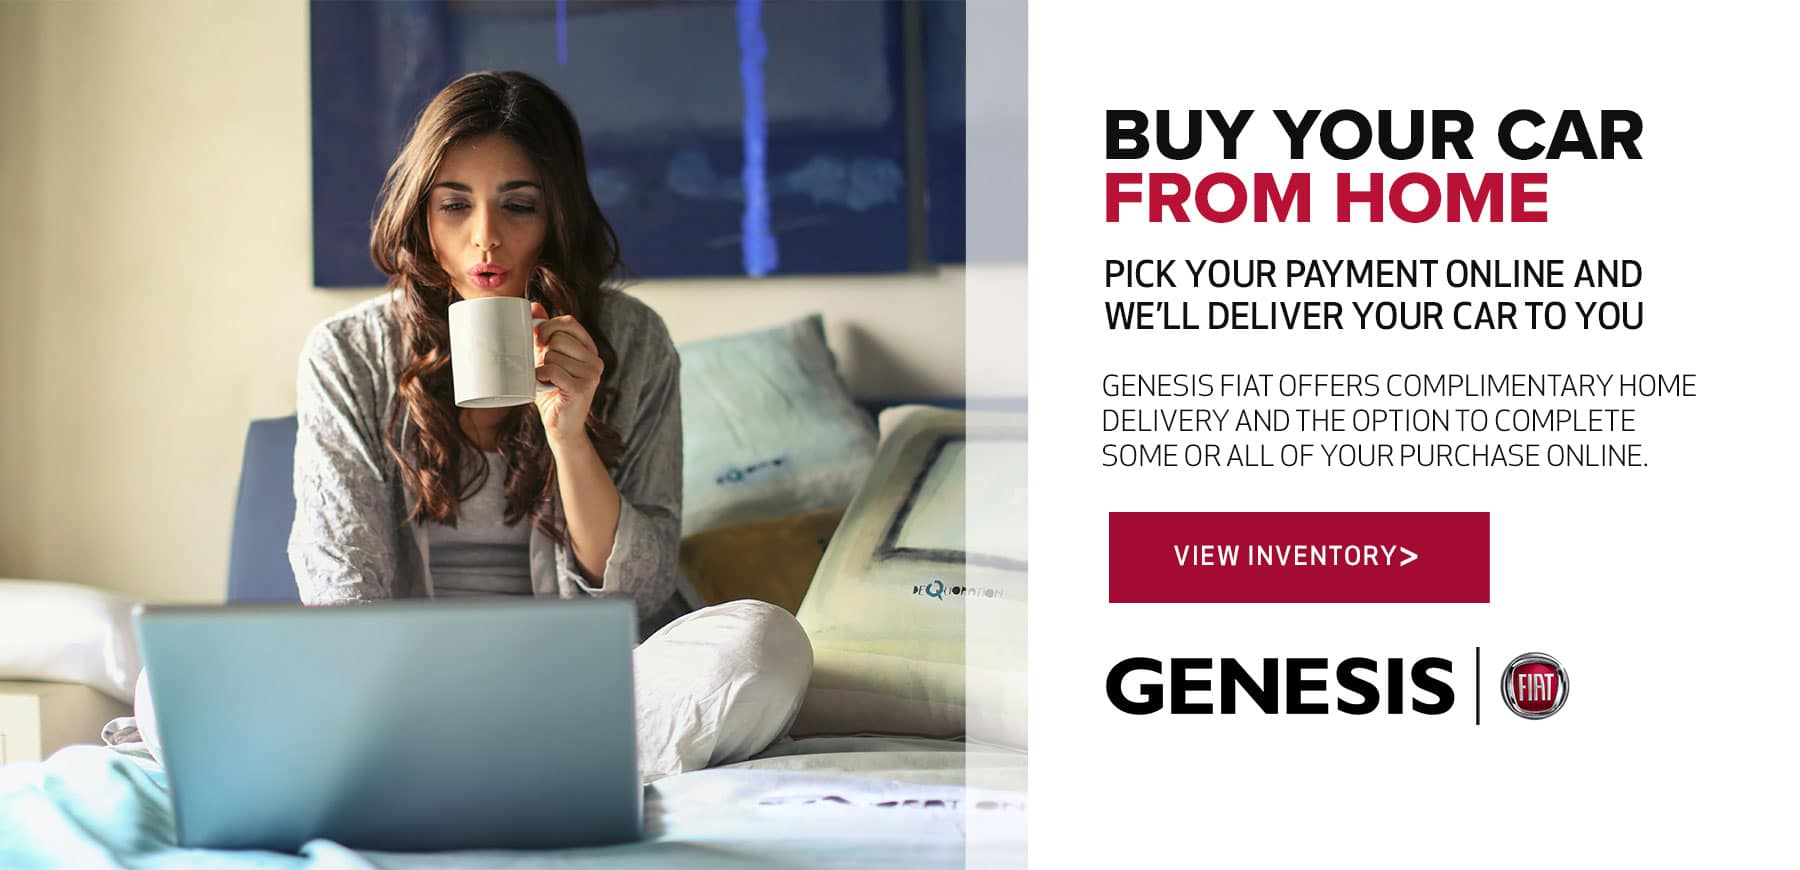 Shop from home with Genesis FIAT